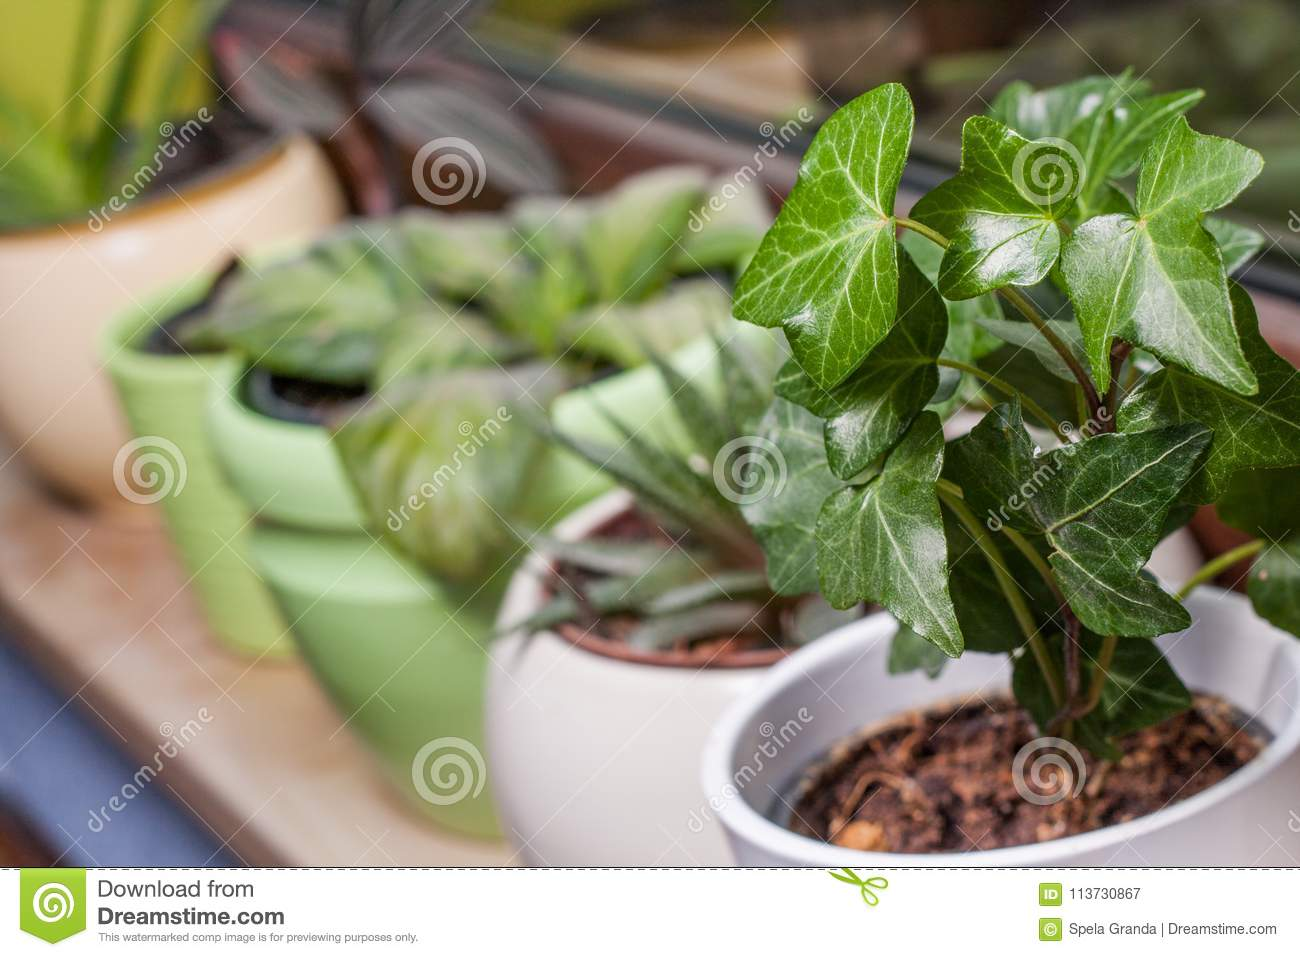 Green Potted Plants On A Window Sill Stock Image - Image of indoors ...